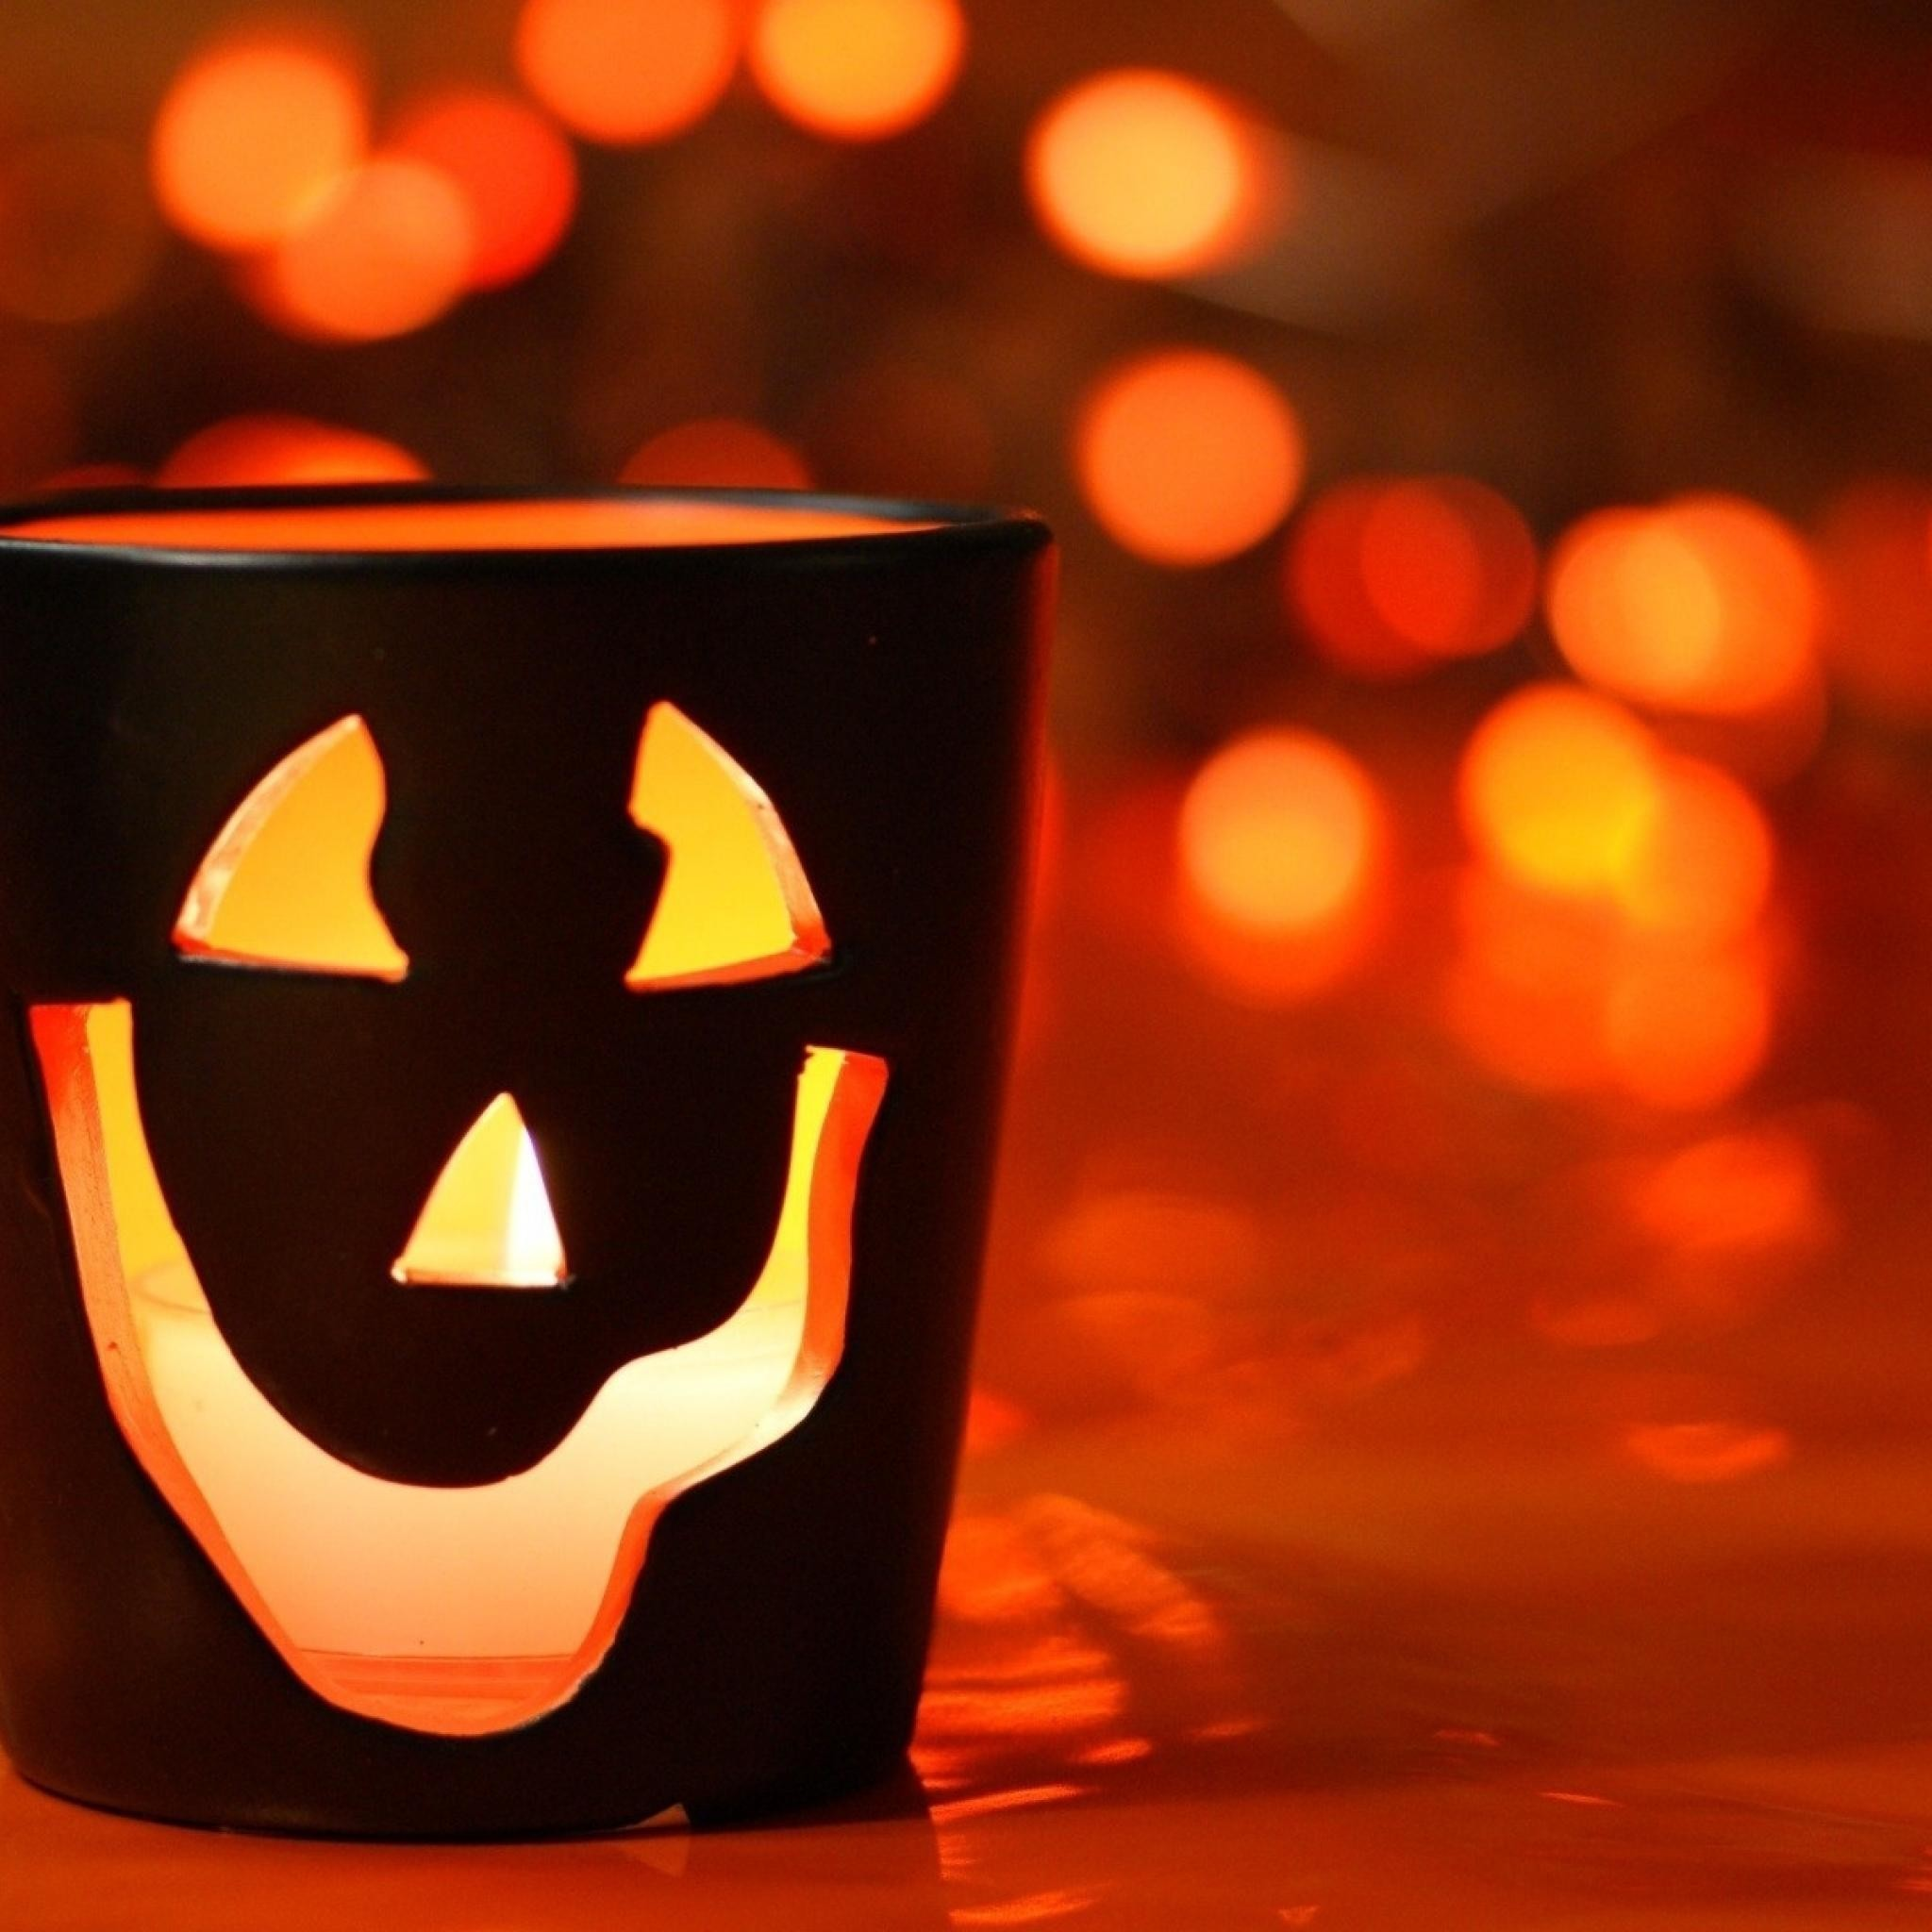 Cute Halloween Decorations Pinterest: 56+ Cute Halloween Backgrounds ·① Download Free Awesome HD